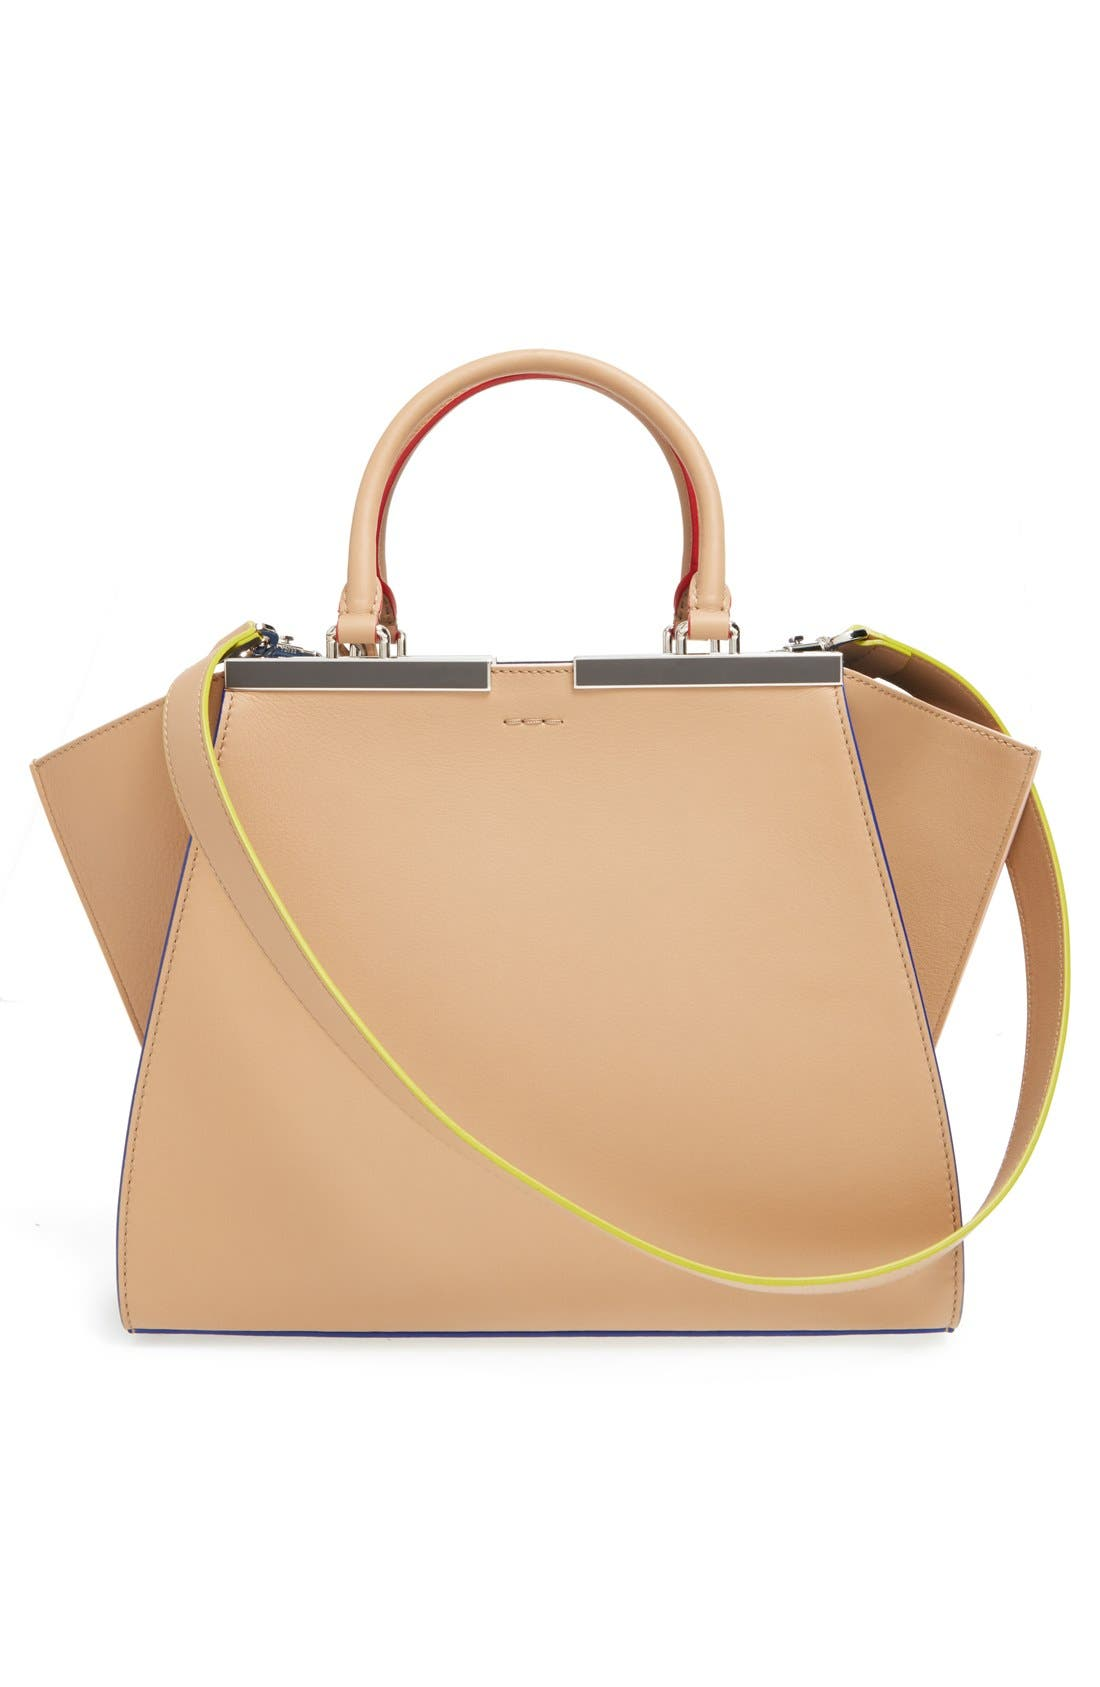 Alternate Image 3  - Fendi '3Jours' Leather Shopper